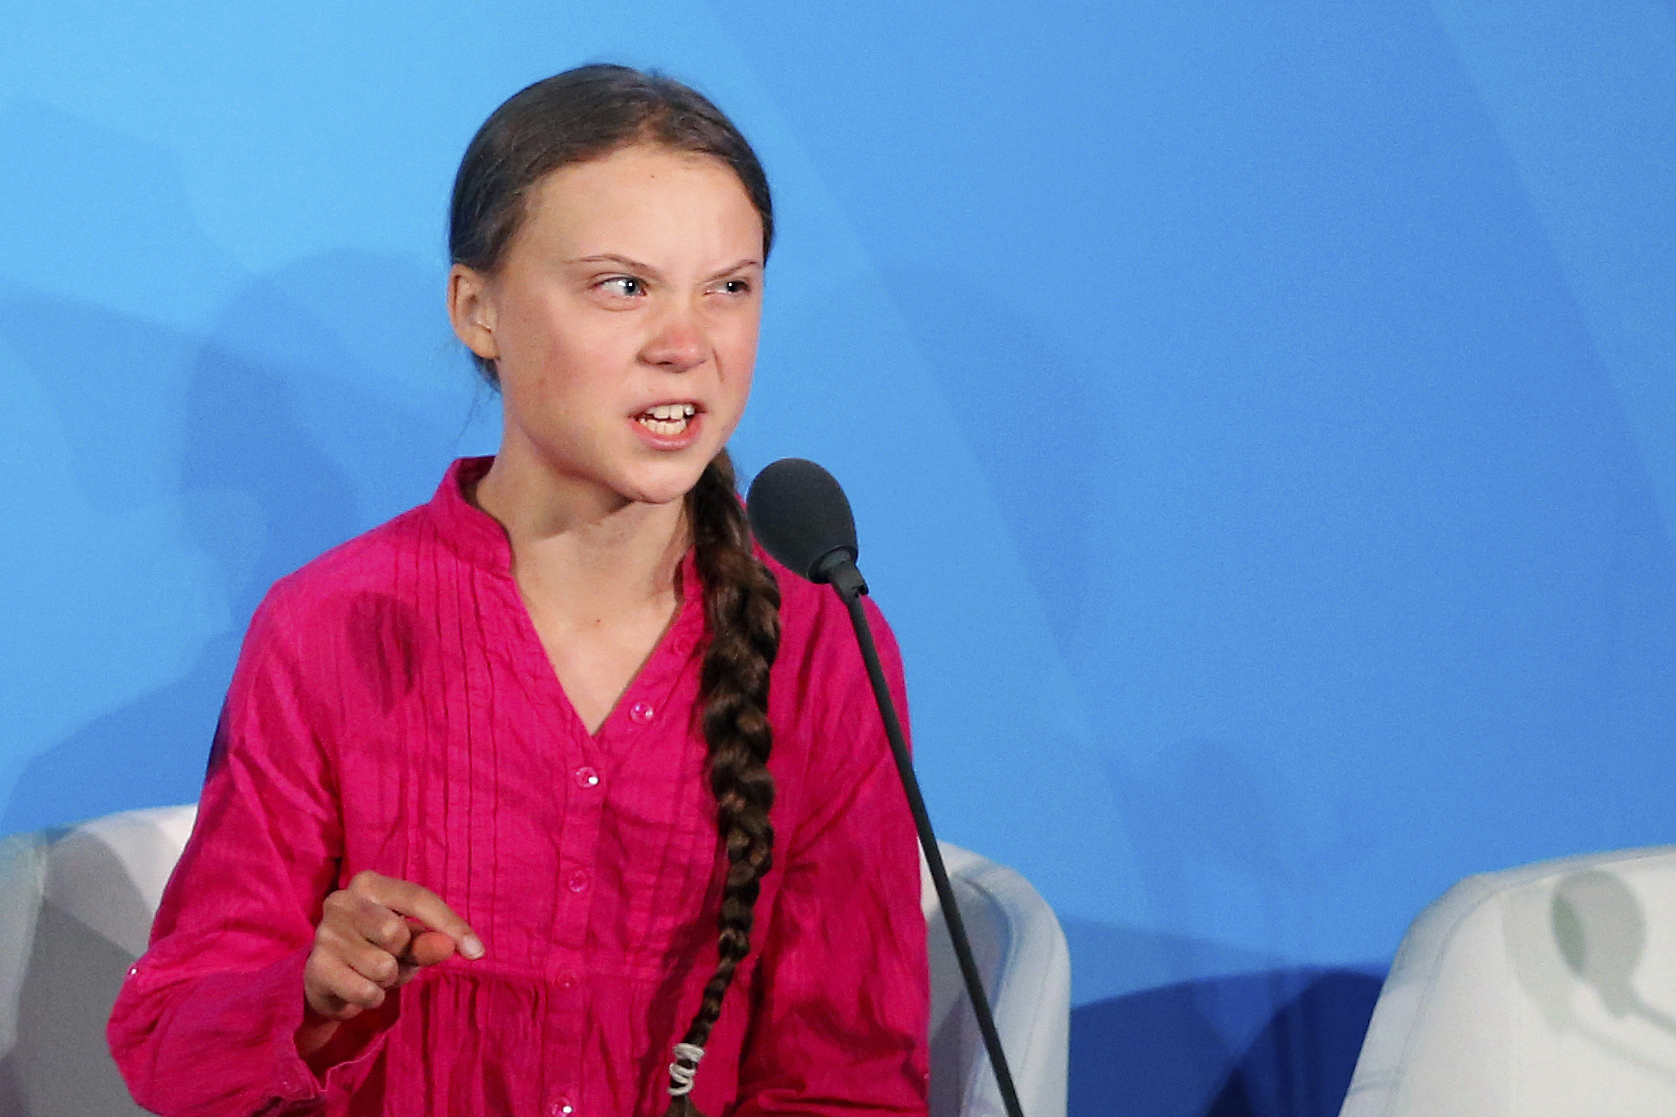 Youth activist Greta Thunberg addresses the Climate Action Summit at the United Nations on Sept. 23, 2019 in New York City.